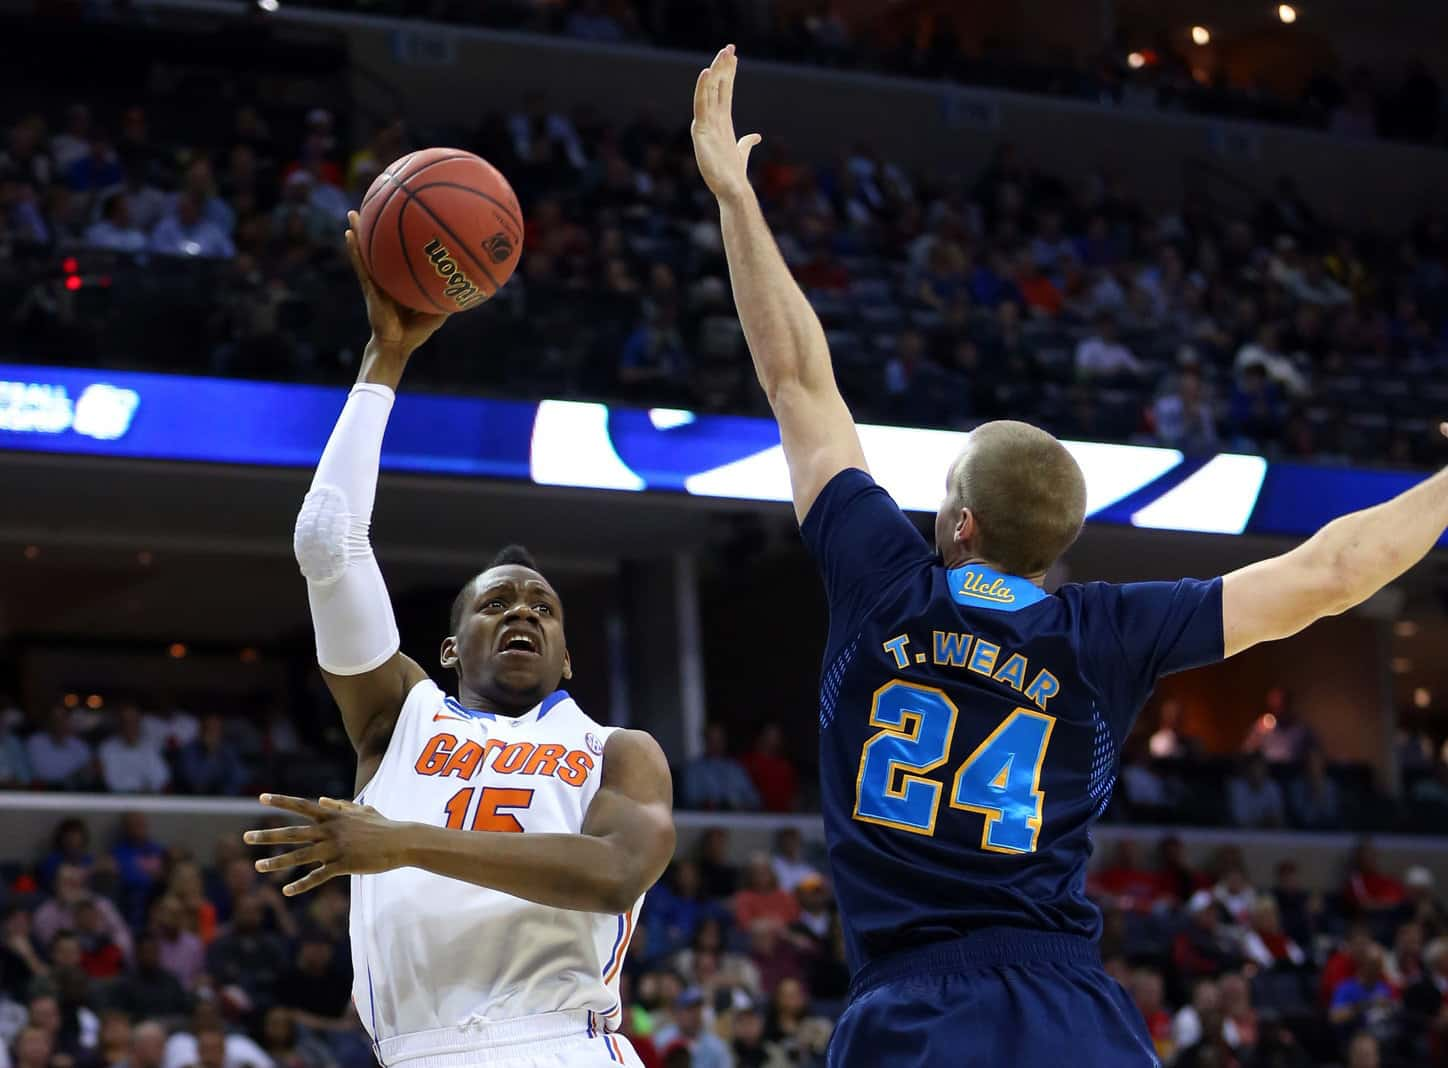 Mar 27, 2014; Memphis, TN, USA; Florida Gators forward Will Yeguete (15) shoots against UCLA Bruins forward Travis Wear (24) during the first half in the semifinals of the south regional of the 2014 NCAA Mens Basketball Championship tournament at FedExForum. Photo By: Spruce Derden-USA TODAY Sports